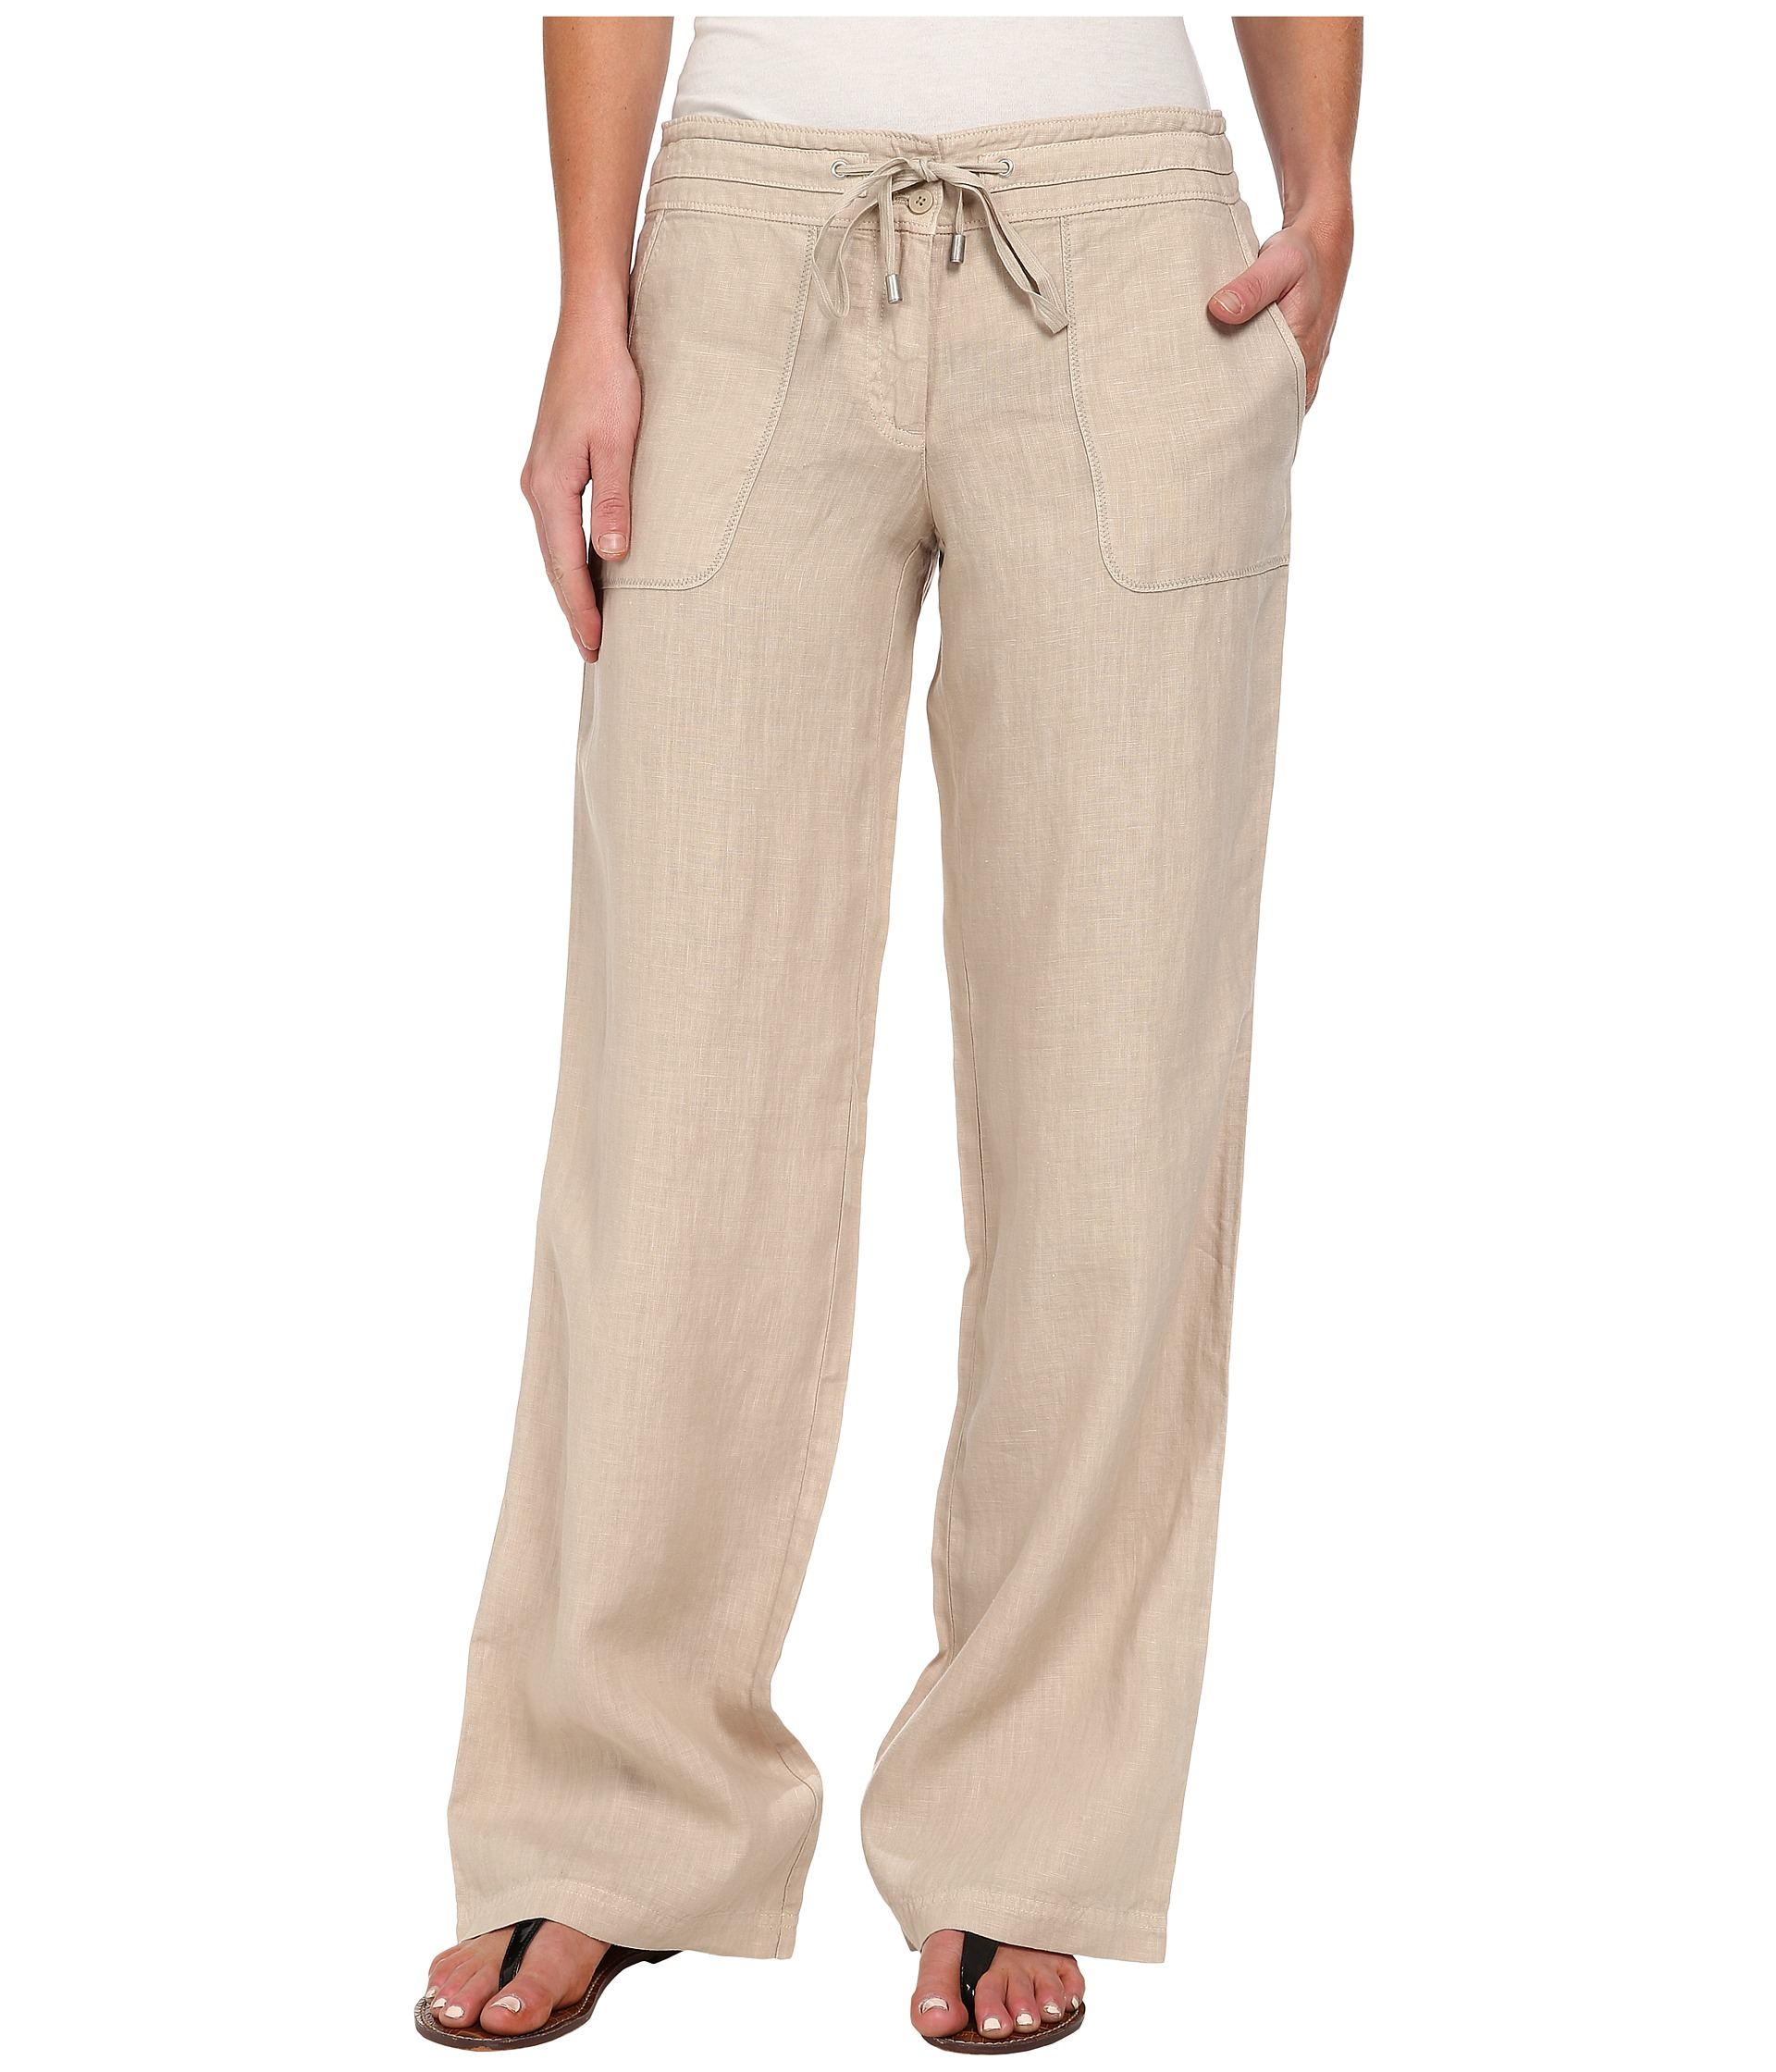 0a03e59d Tommy Bahama Two Palms Drawstring Pants in Natural - Lyst